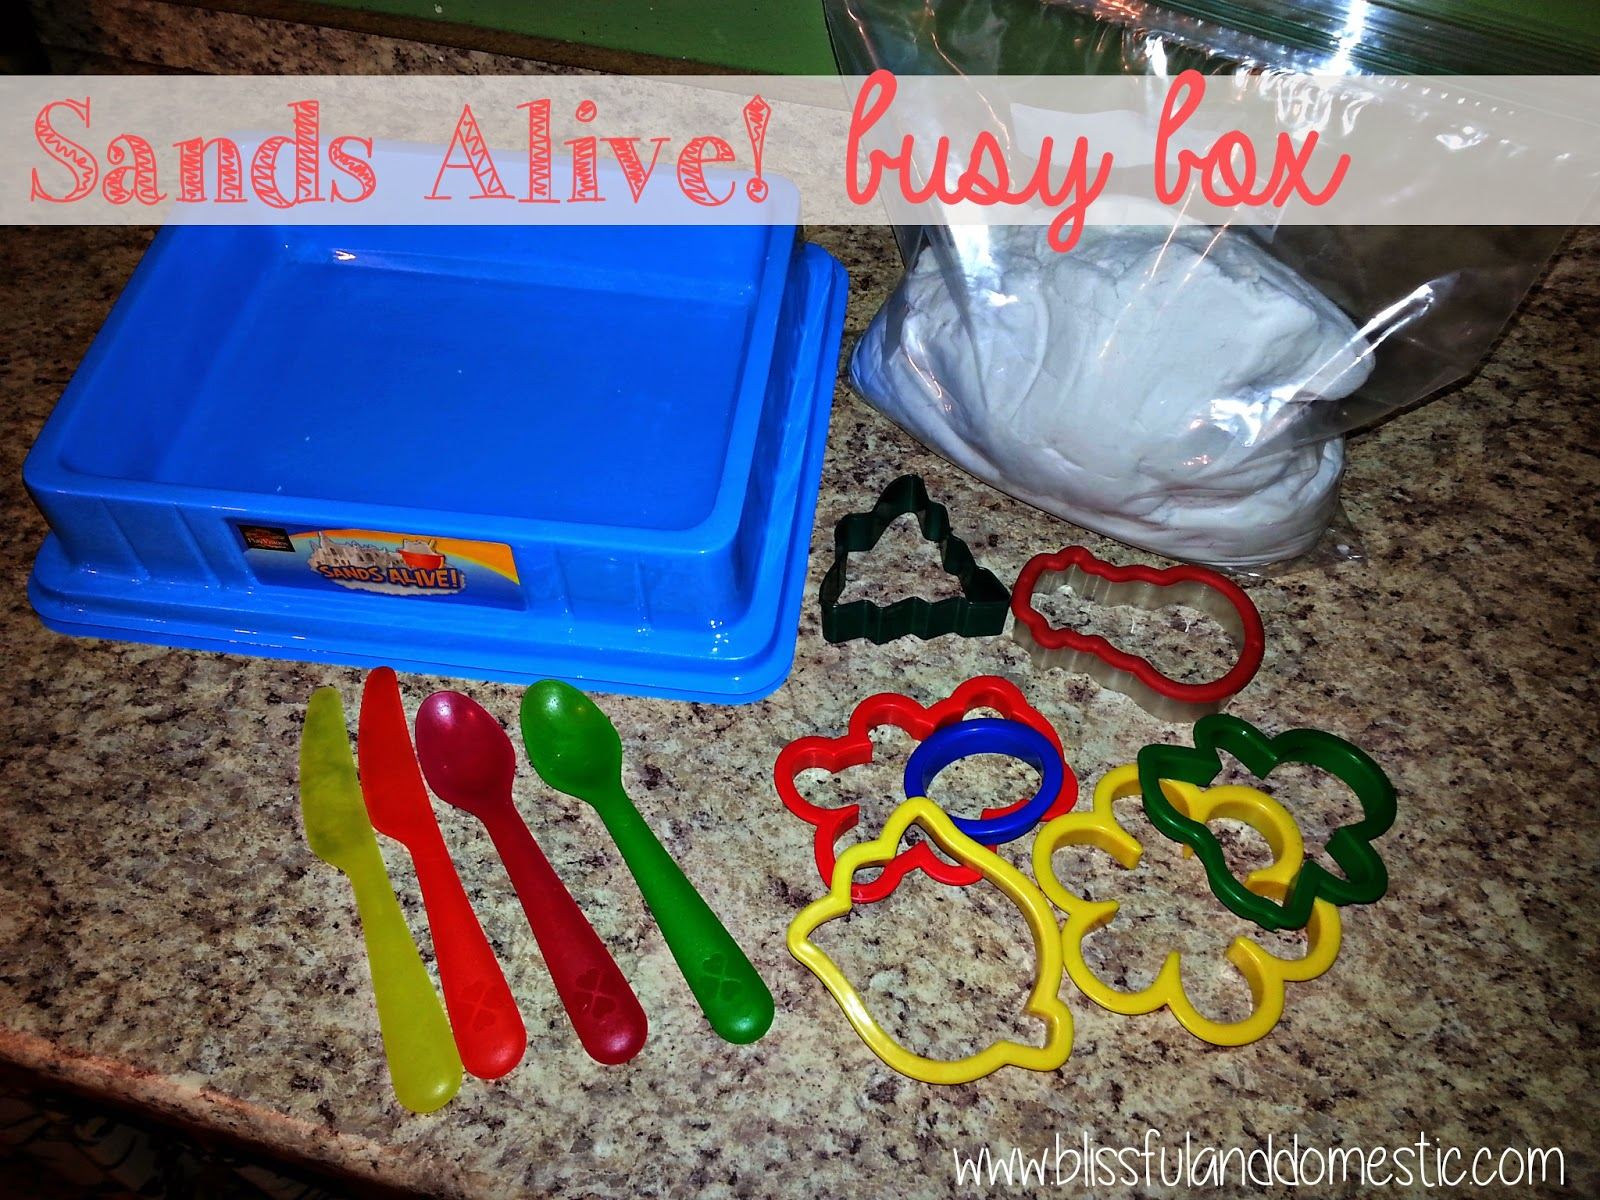 Sands Alive Busy Box